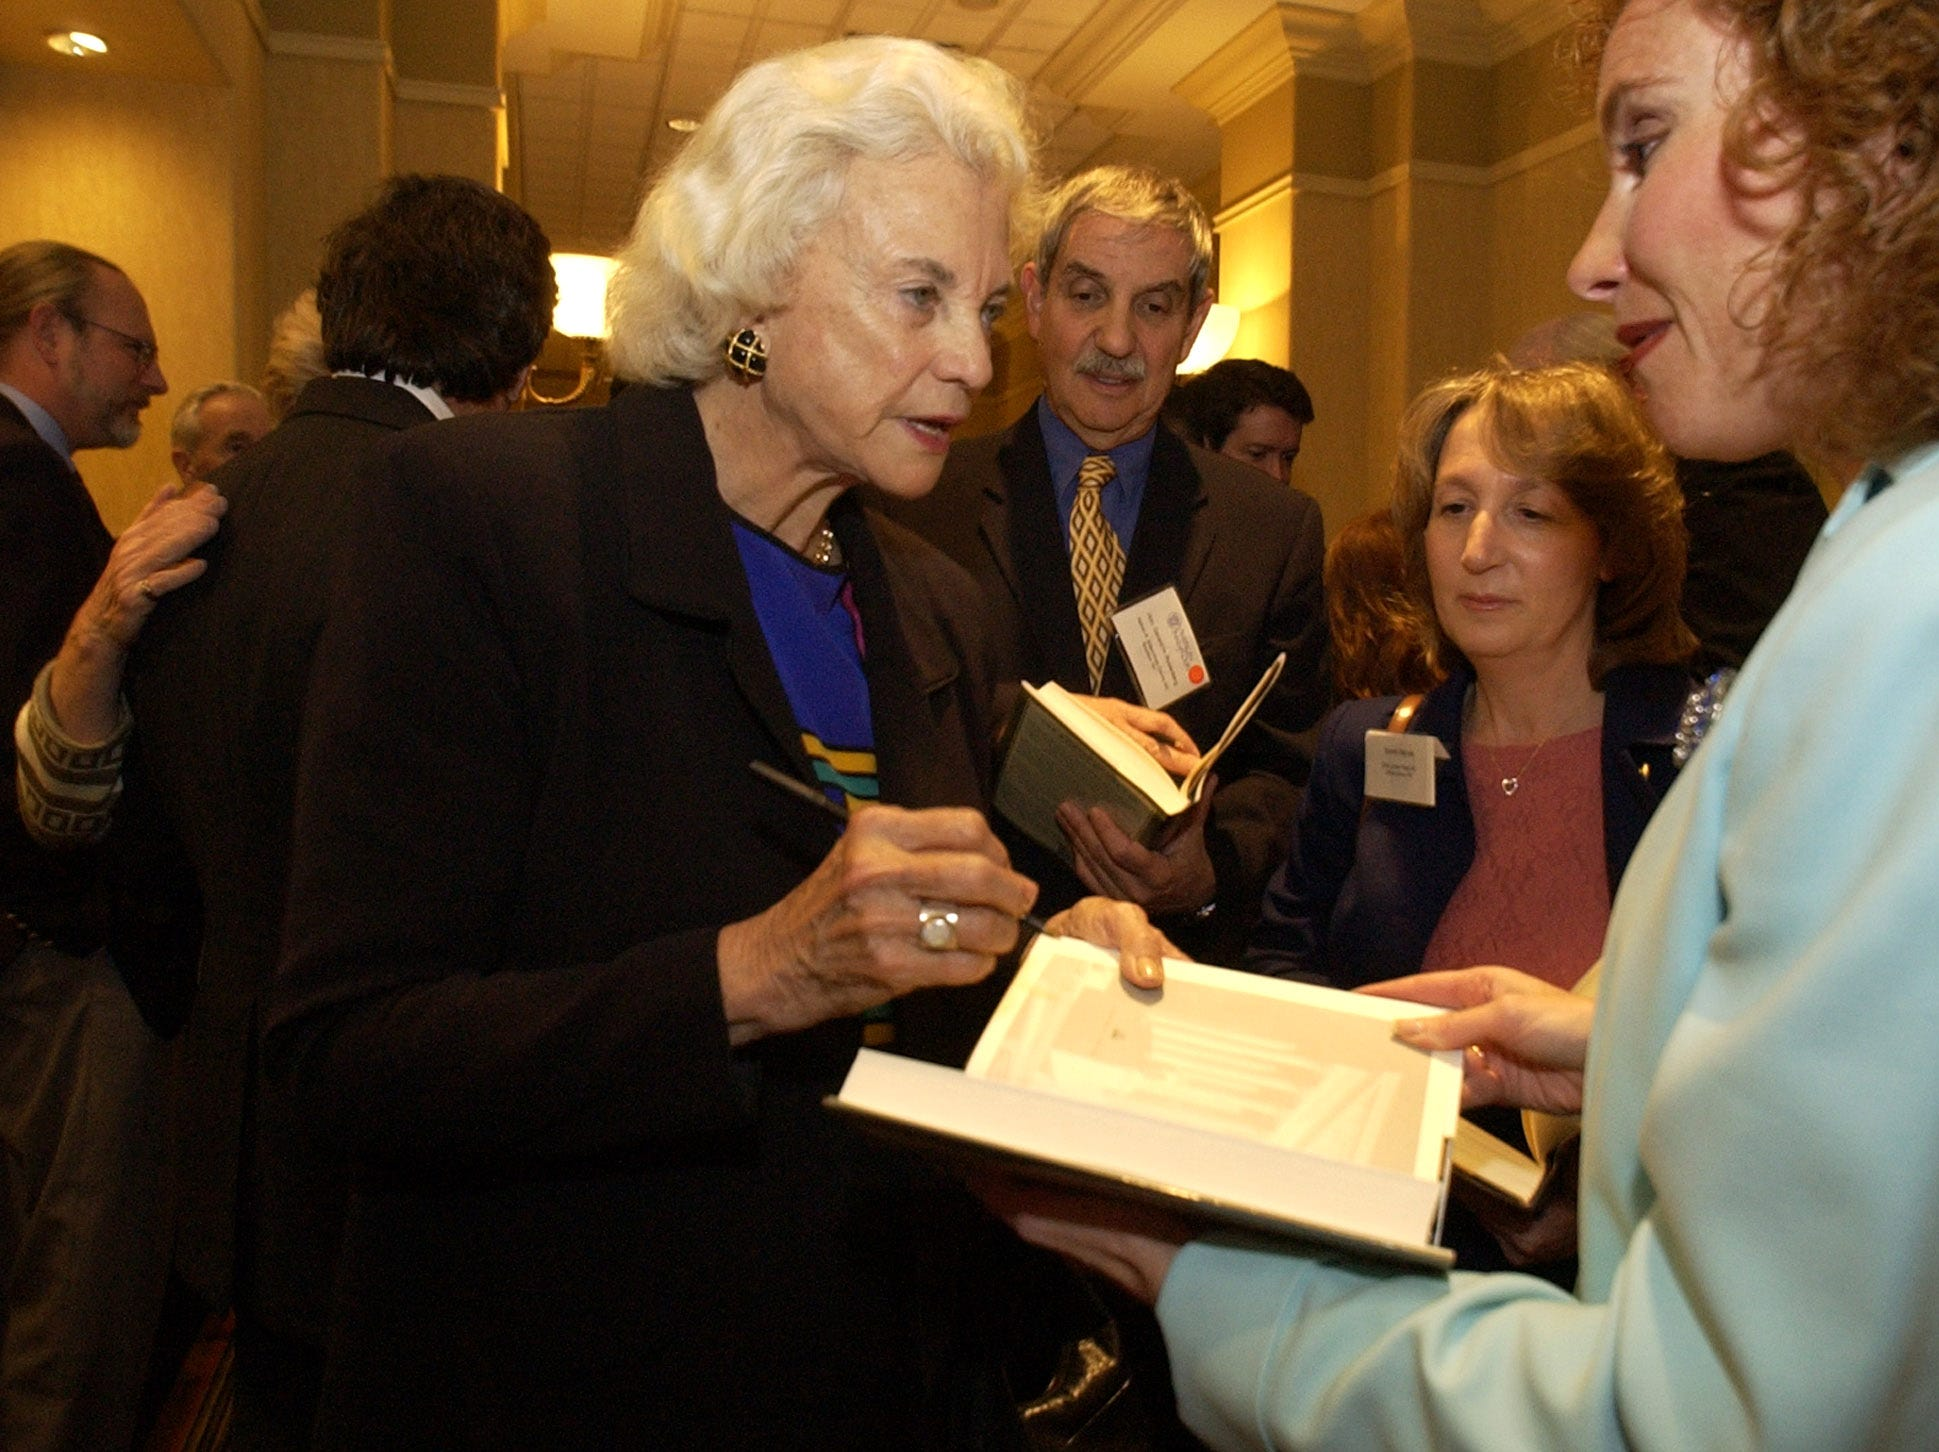 United States Supreme Court Justice Sandra Day O'Connor, left, signs her book for attorney Carolyn Mirabile, right, of Norristown, Pa., at the American Inns of Courts banquet in Philadelphia, Friday, May 16, 2003.